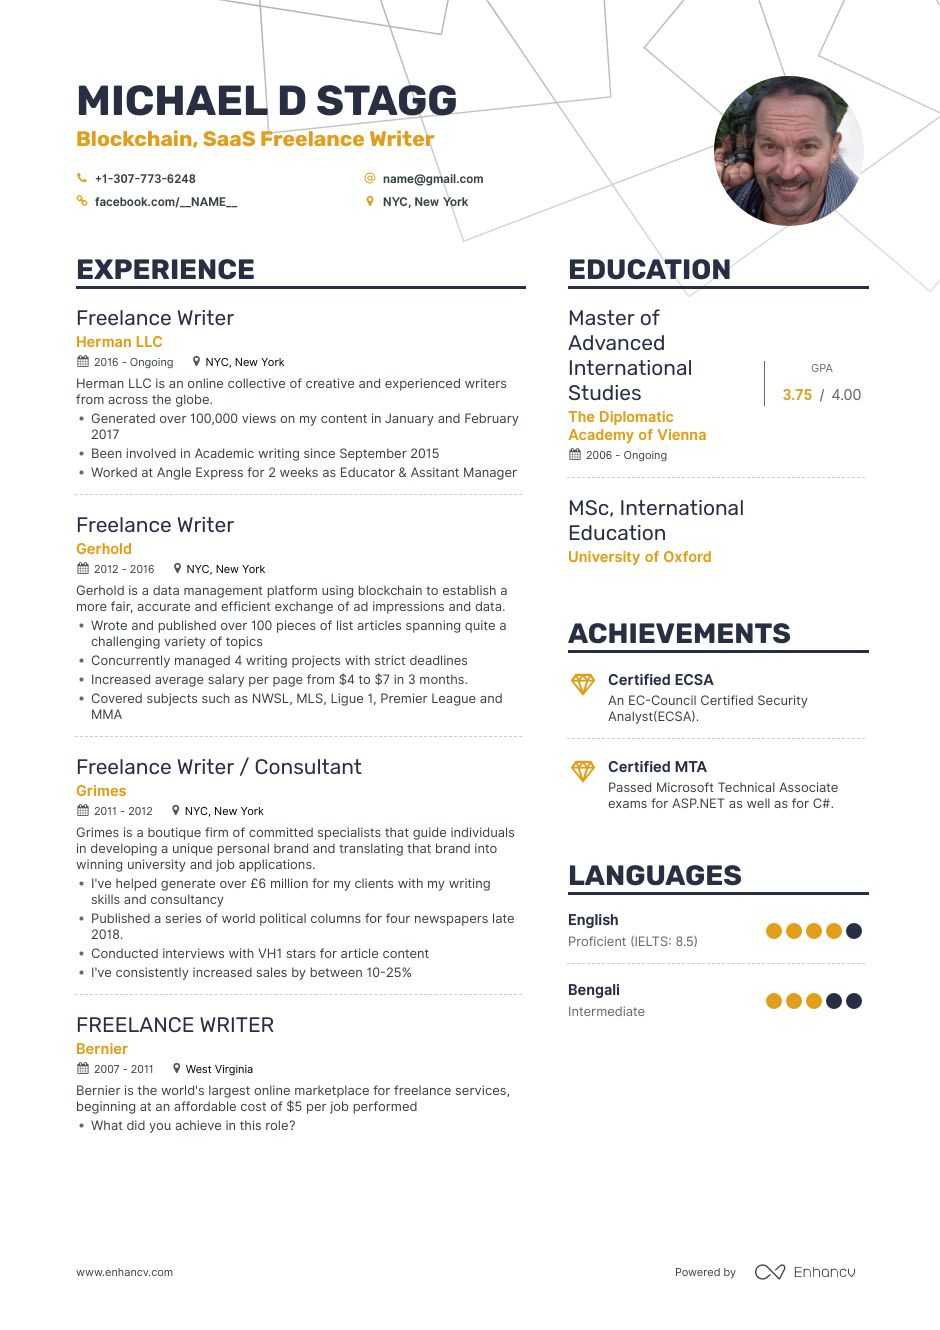 freelance writer resume examples and skills you need to get hired advertising law firm Resume Advertising Resume Writer